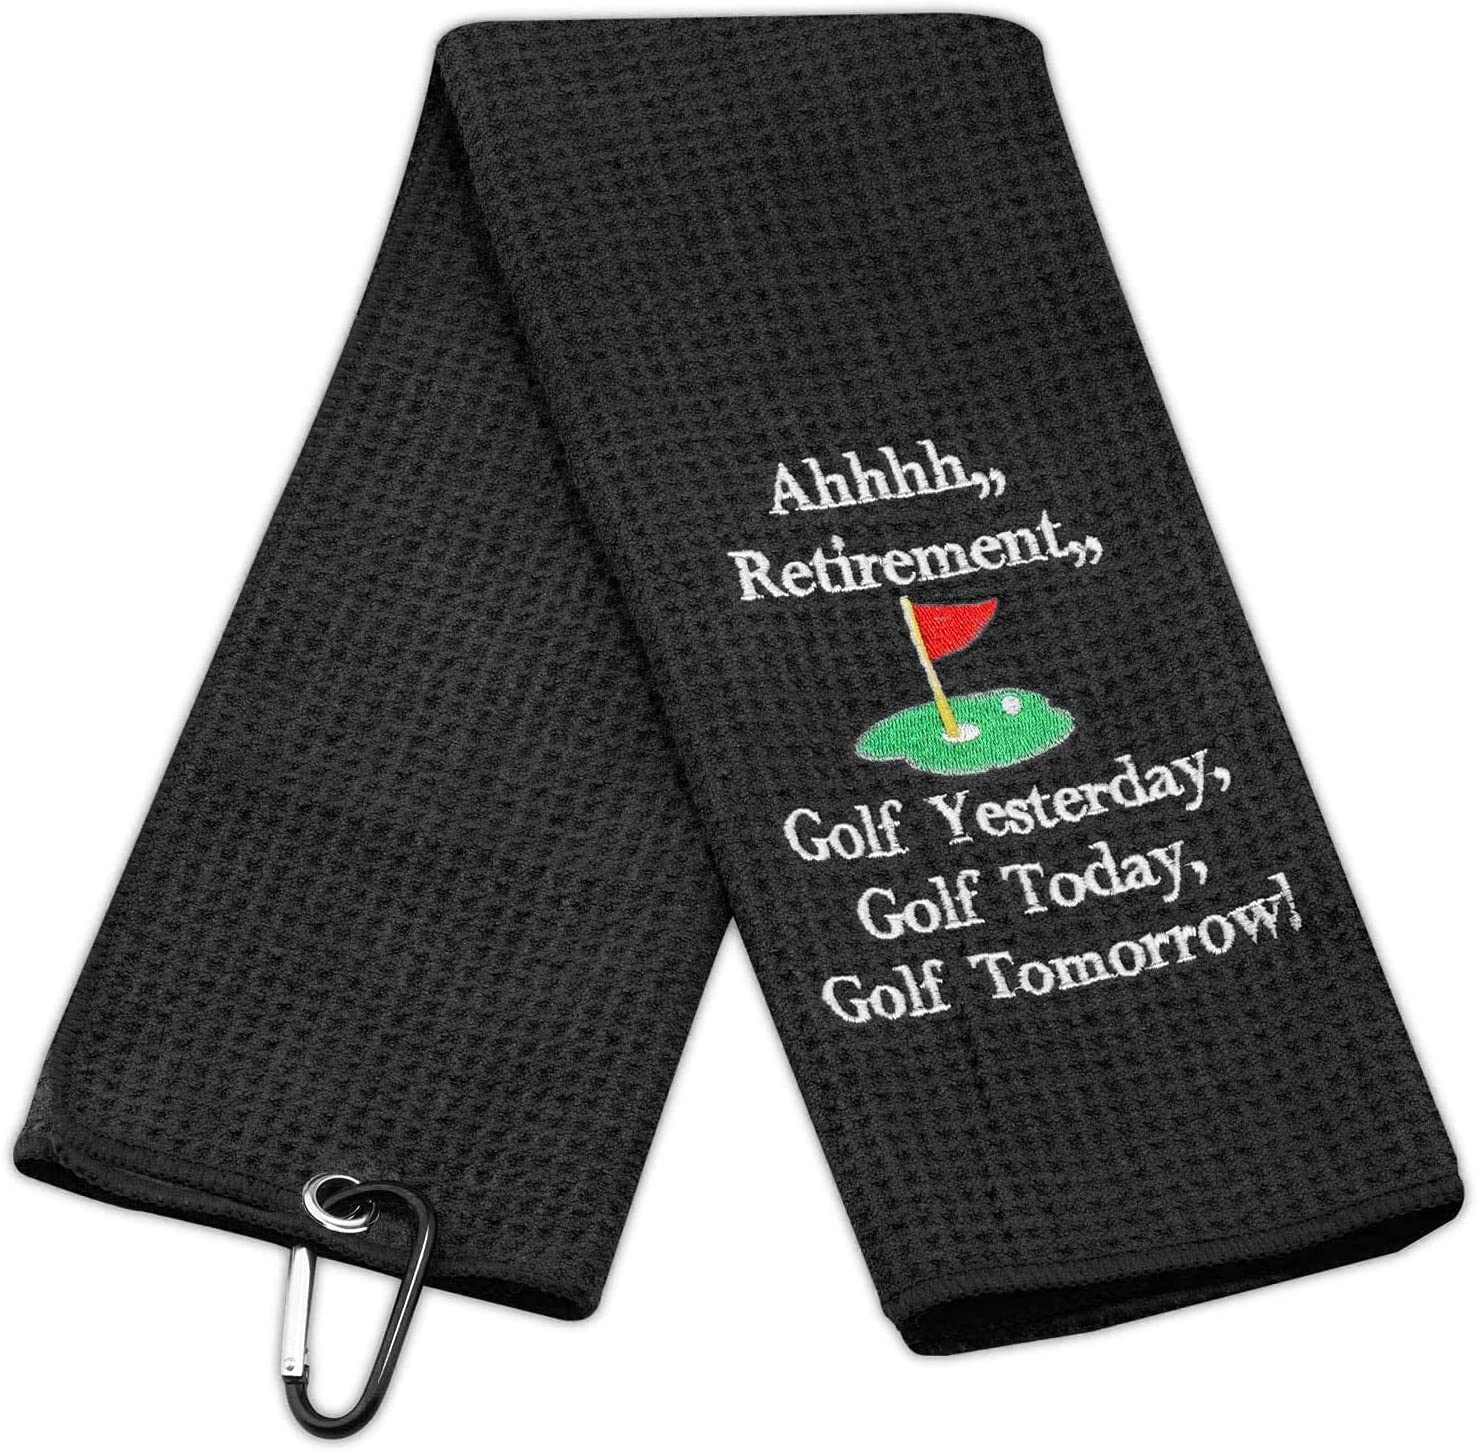 Ahhhh Retirement Golf Yesterday Today Sales for Max 66% OFF sale Tomorrow Embroid